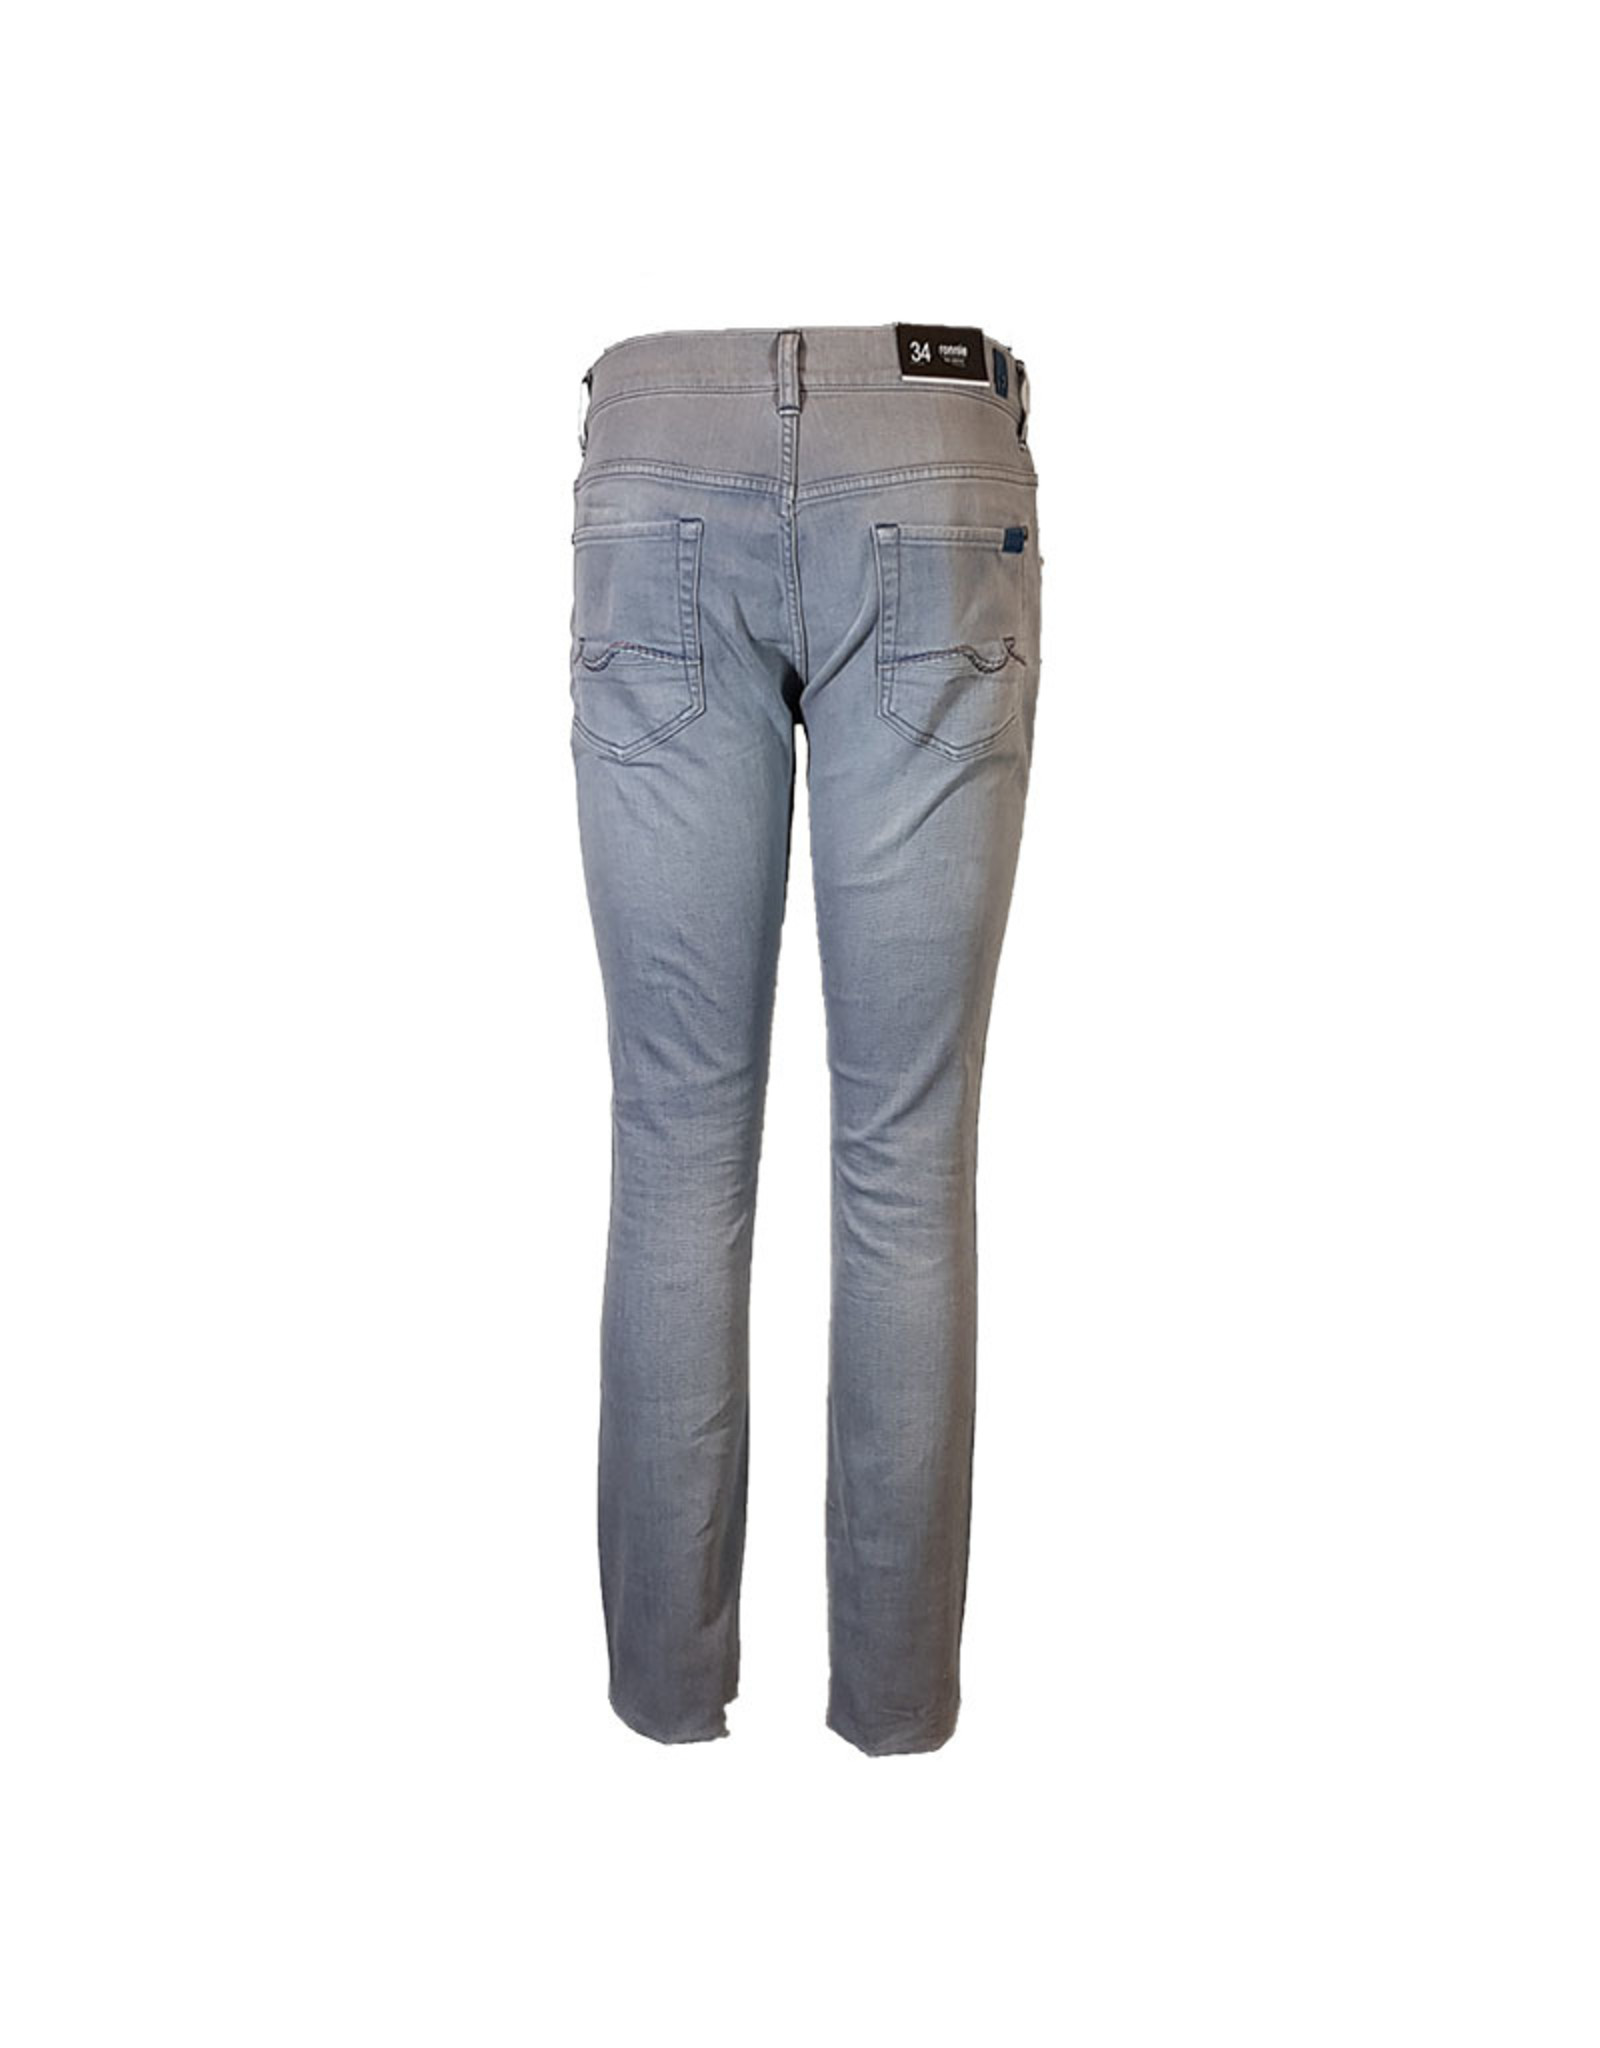 7 For All Mankind 7FAM jeans grijs Ronnie SD4U54BLG